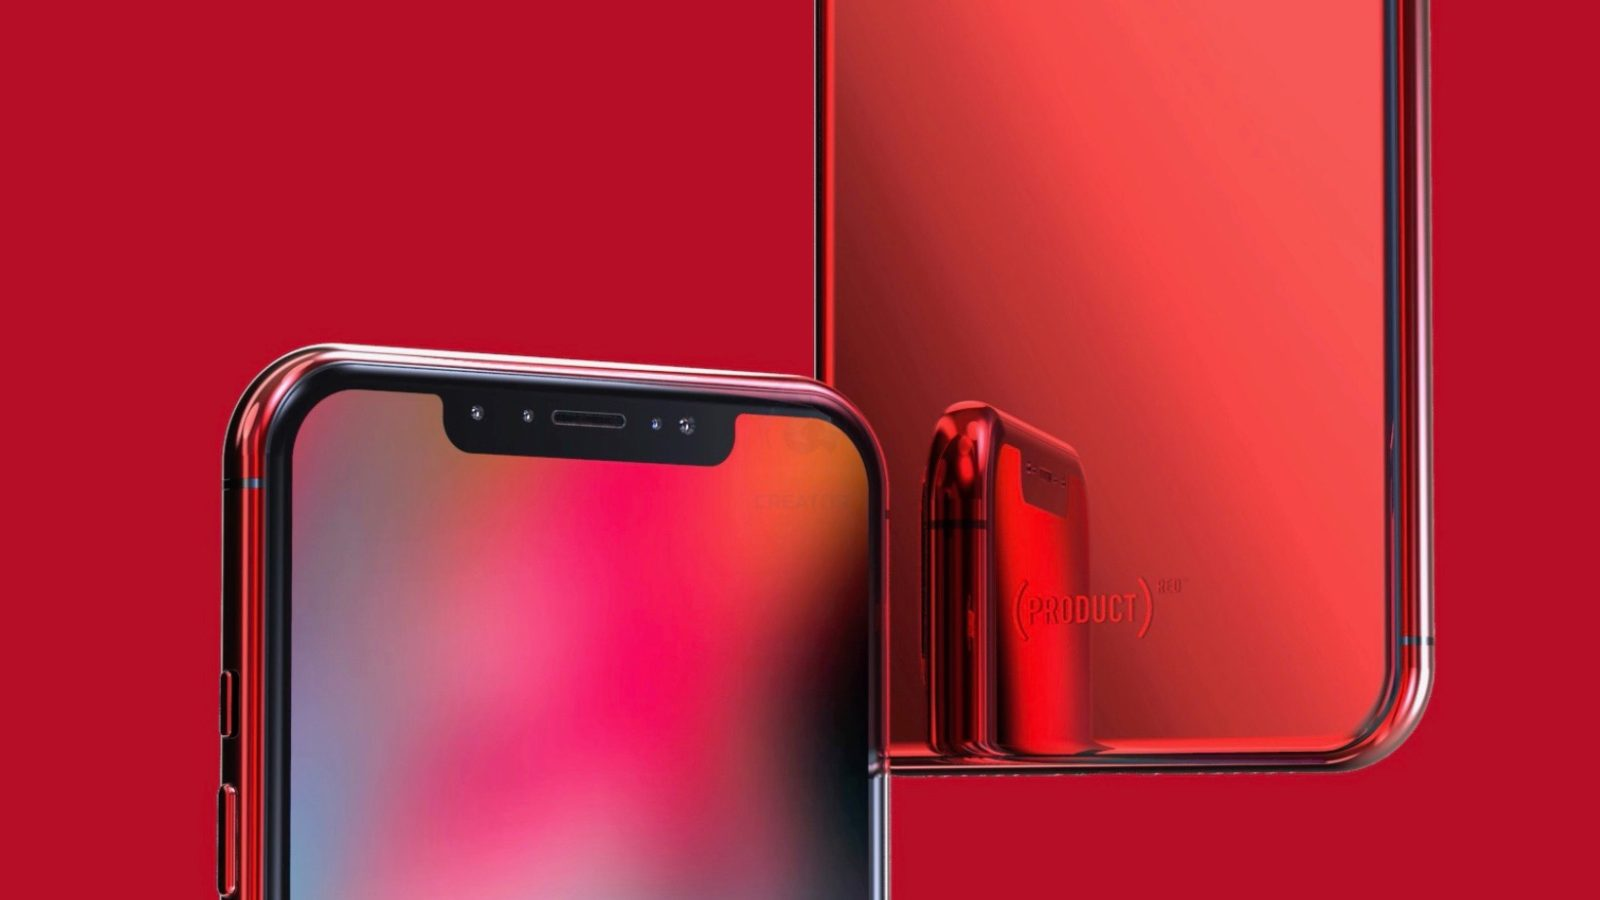 hot sale online d8781 9883c Concept imagines (PRODUCT)RED iPhone X & iPhone X Plus [Video] - 9to5Mac